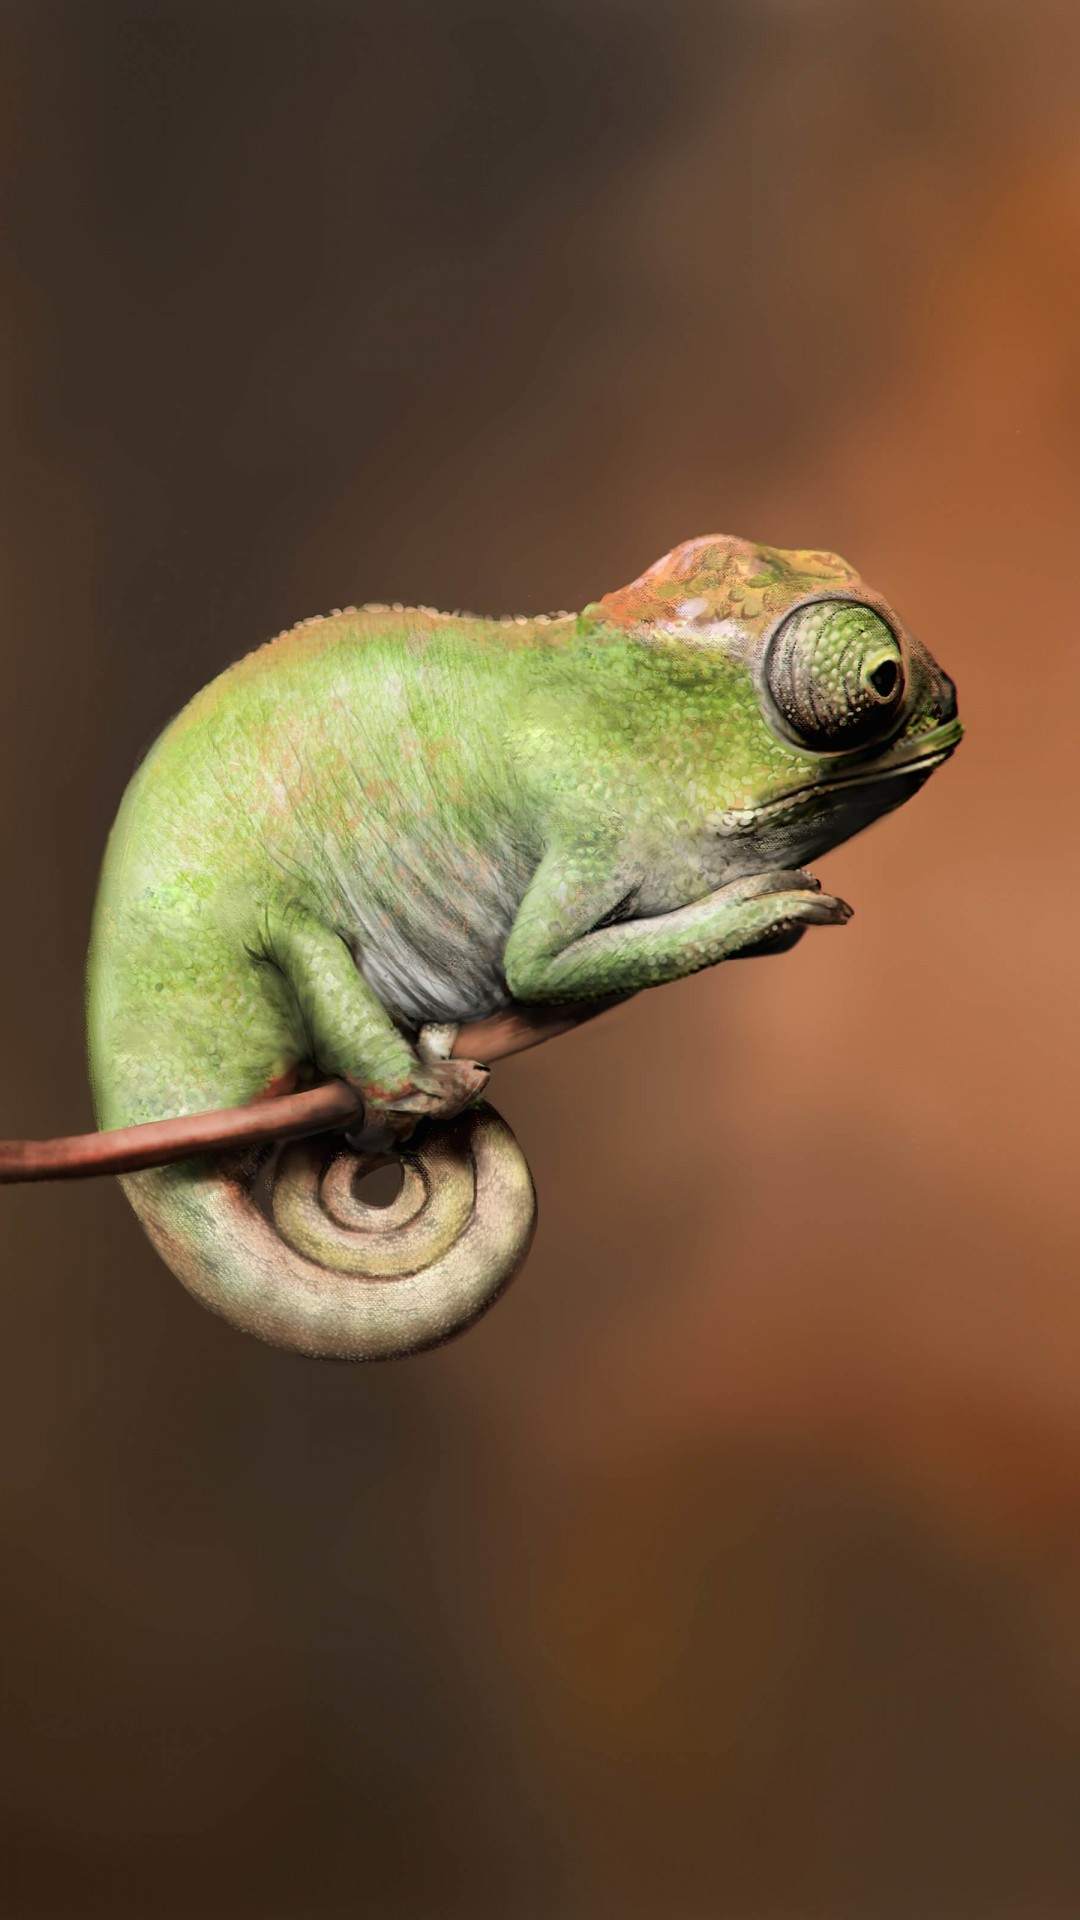 Baby Chameleon Perching On a Twisted Branch Wallpaper for Motorola Moto X